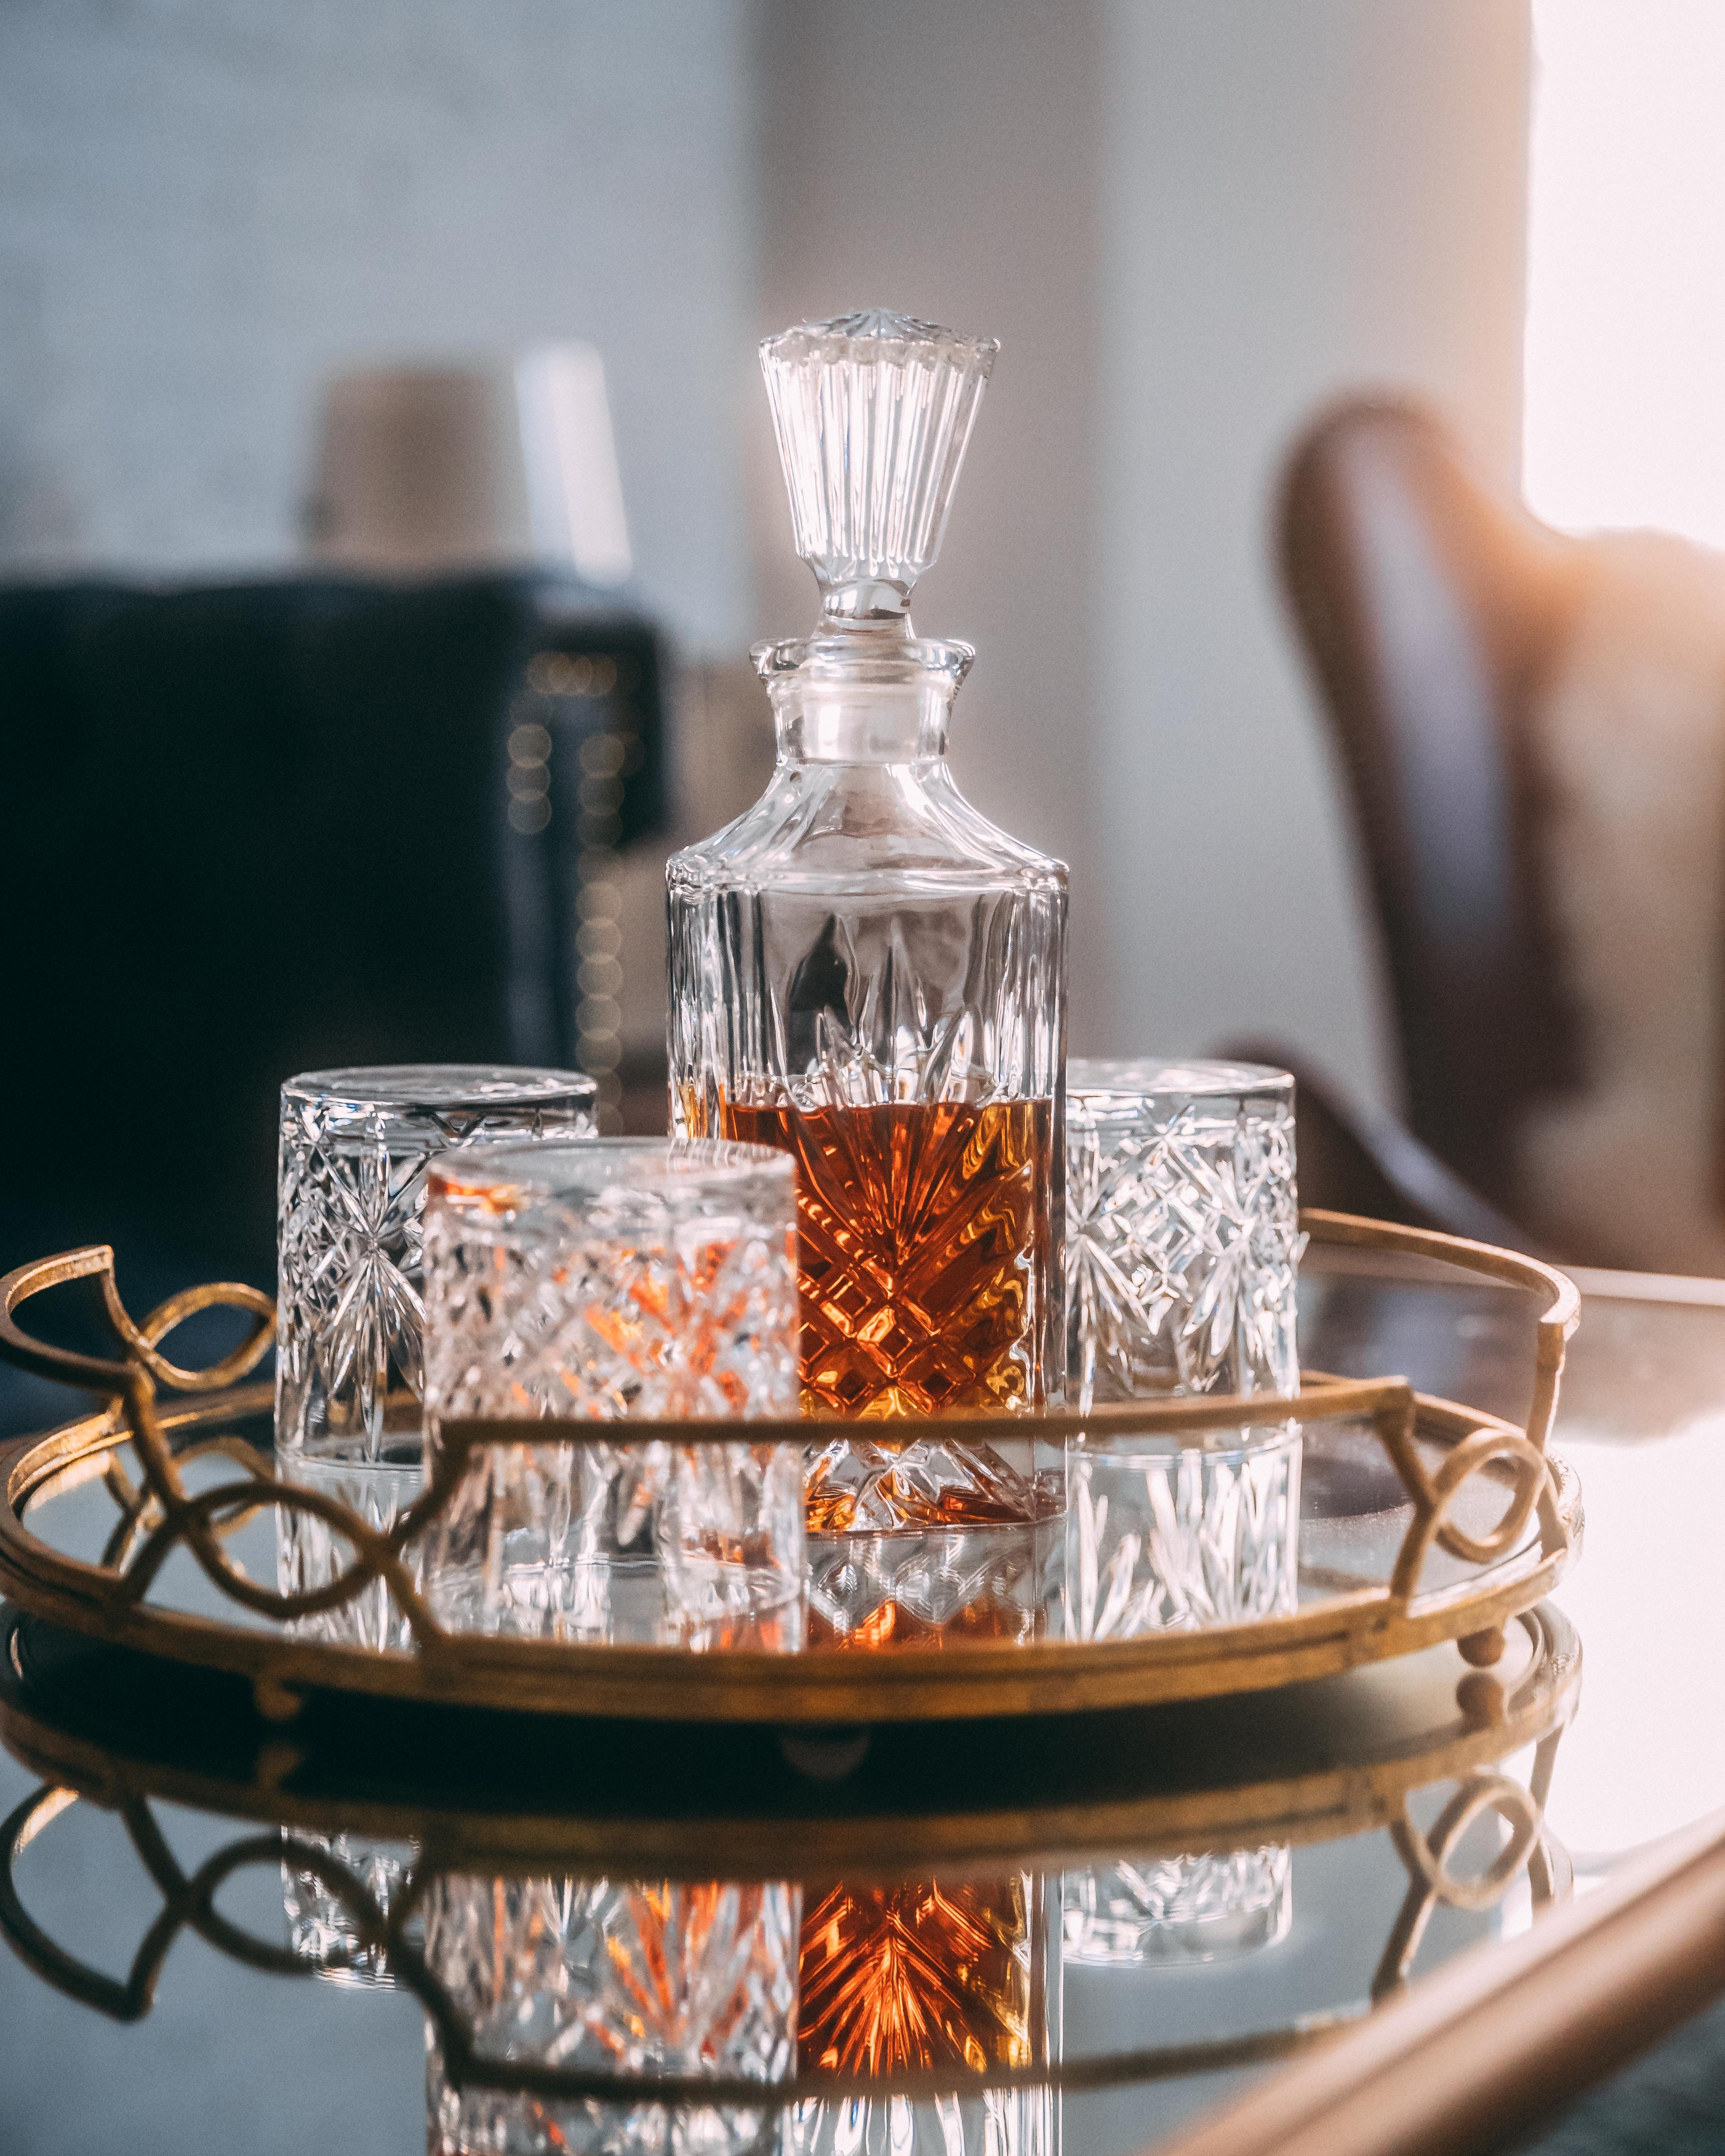 selective focus photography of liquor in decanter on mirror tray